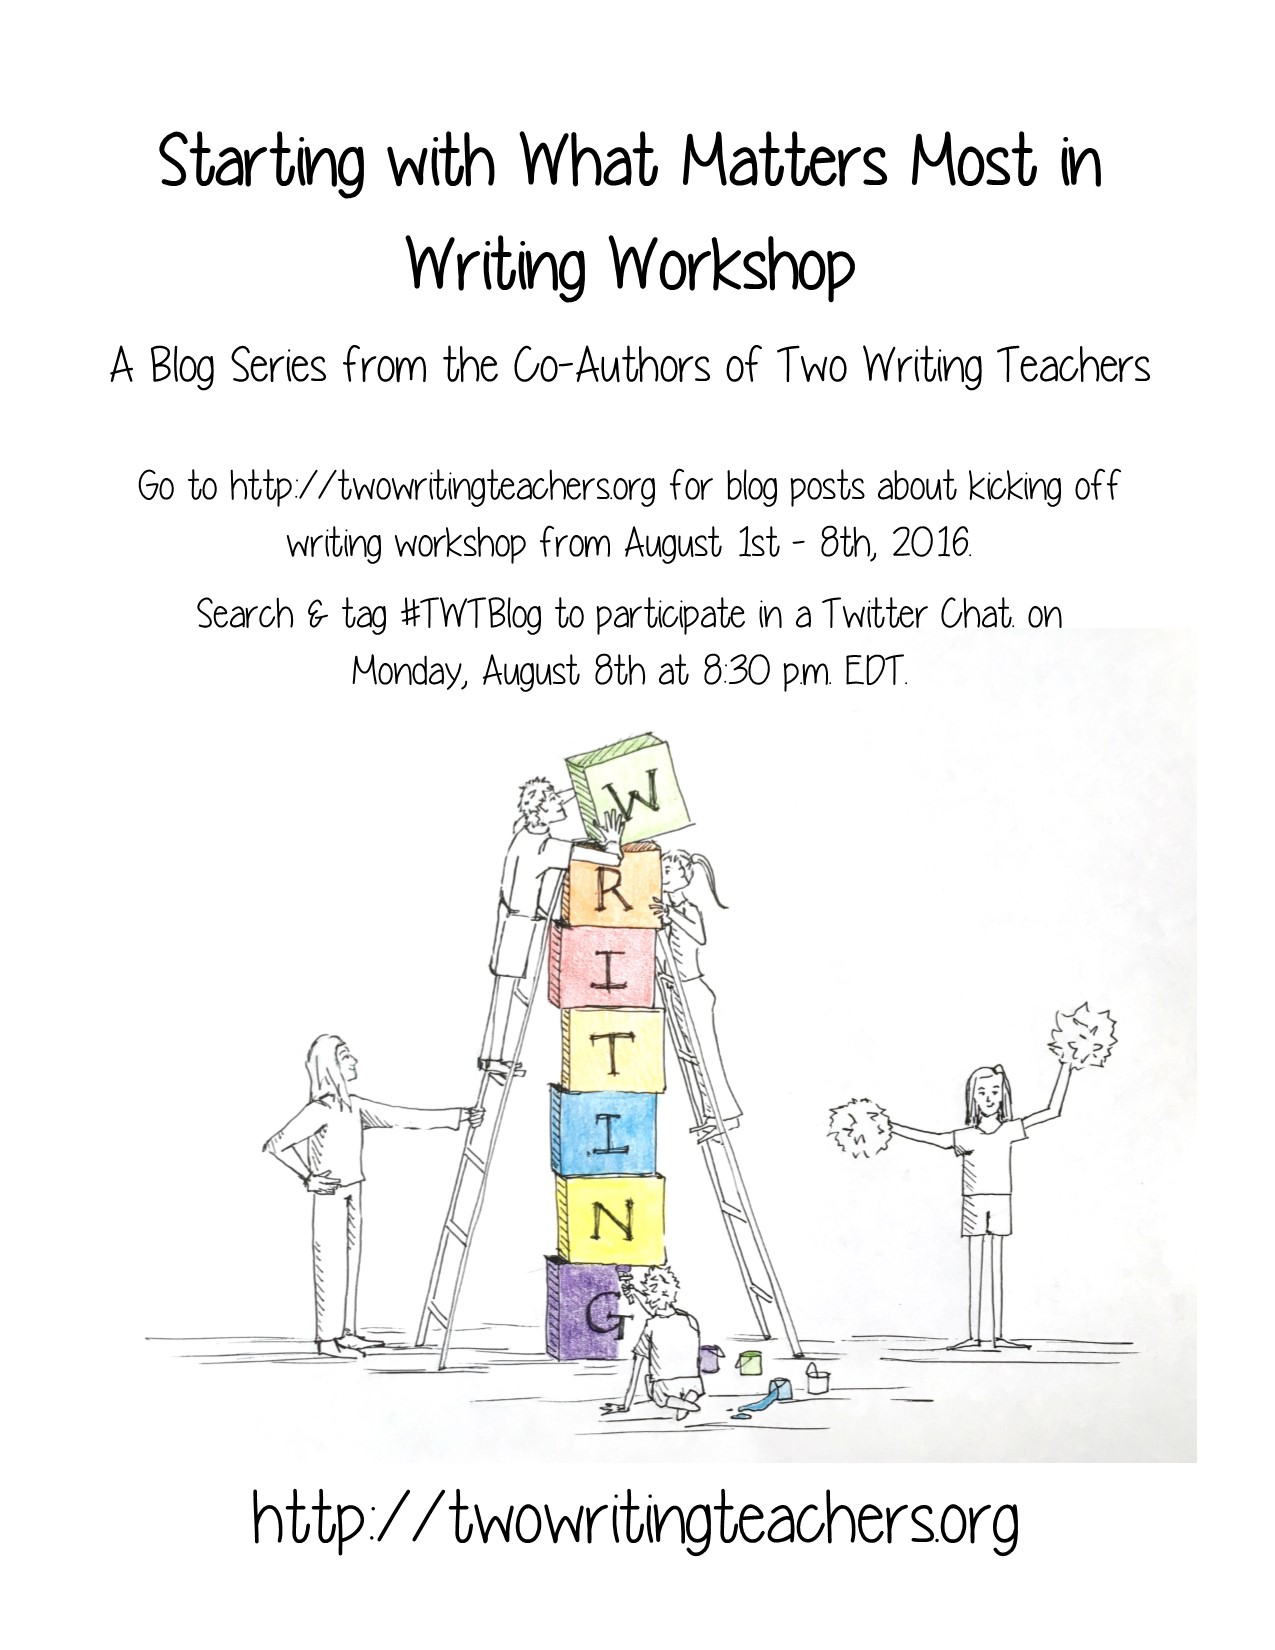 Starting with What Matters Most in Writing Workshop